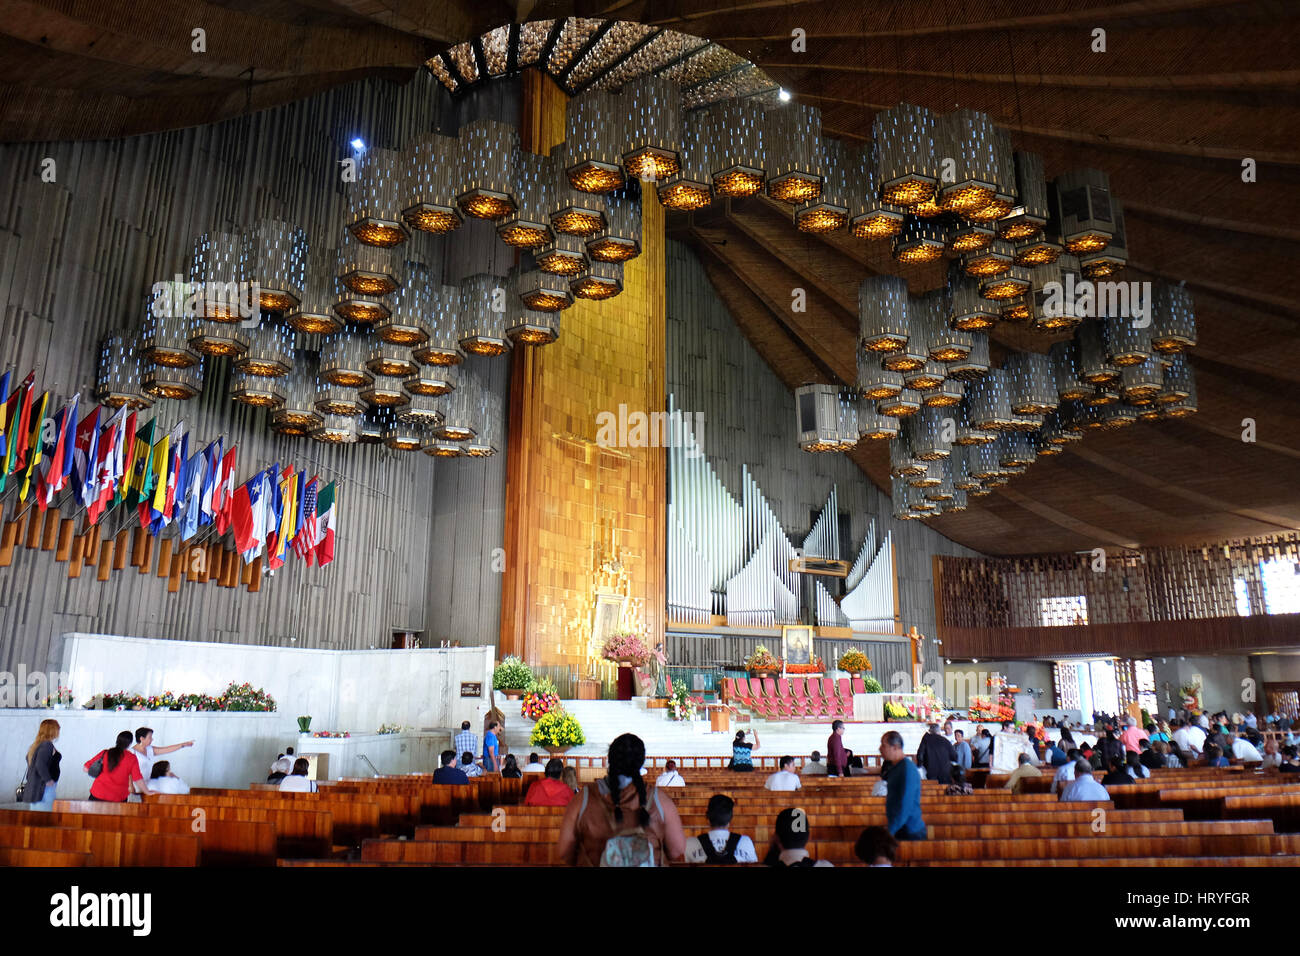 Church Interior Design High Resolution Stock Photography And Images Alamy